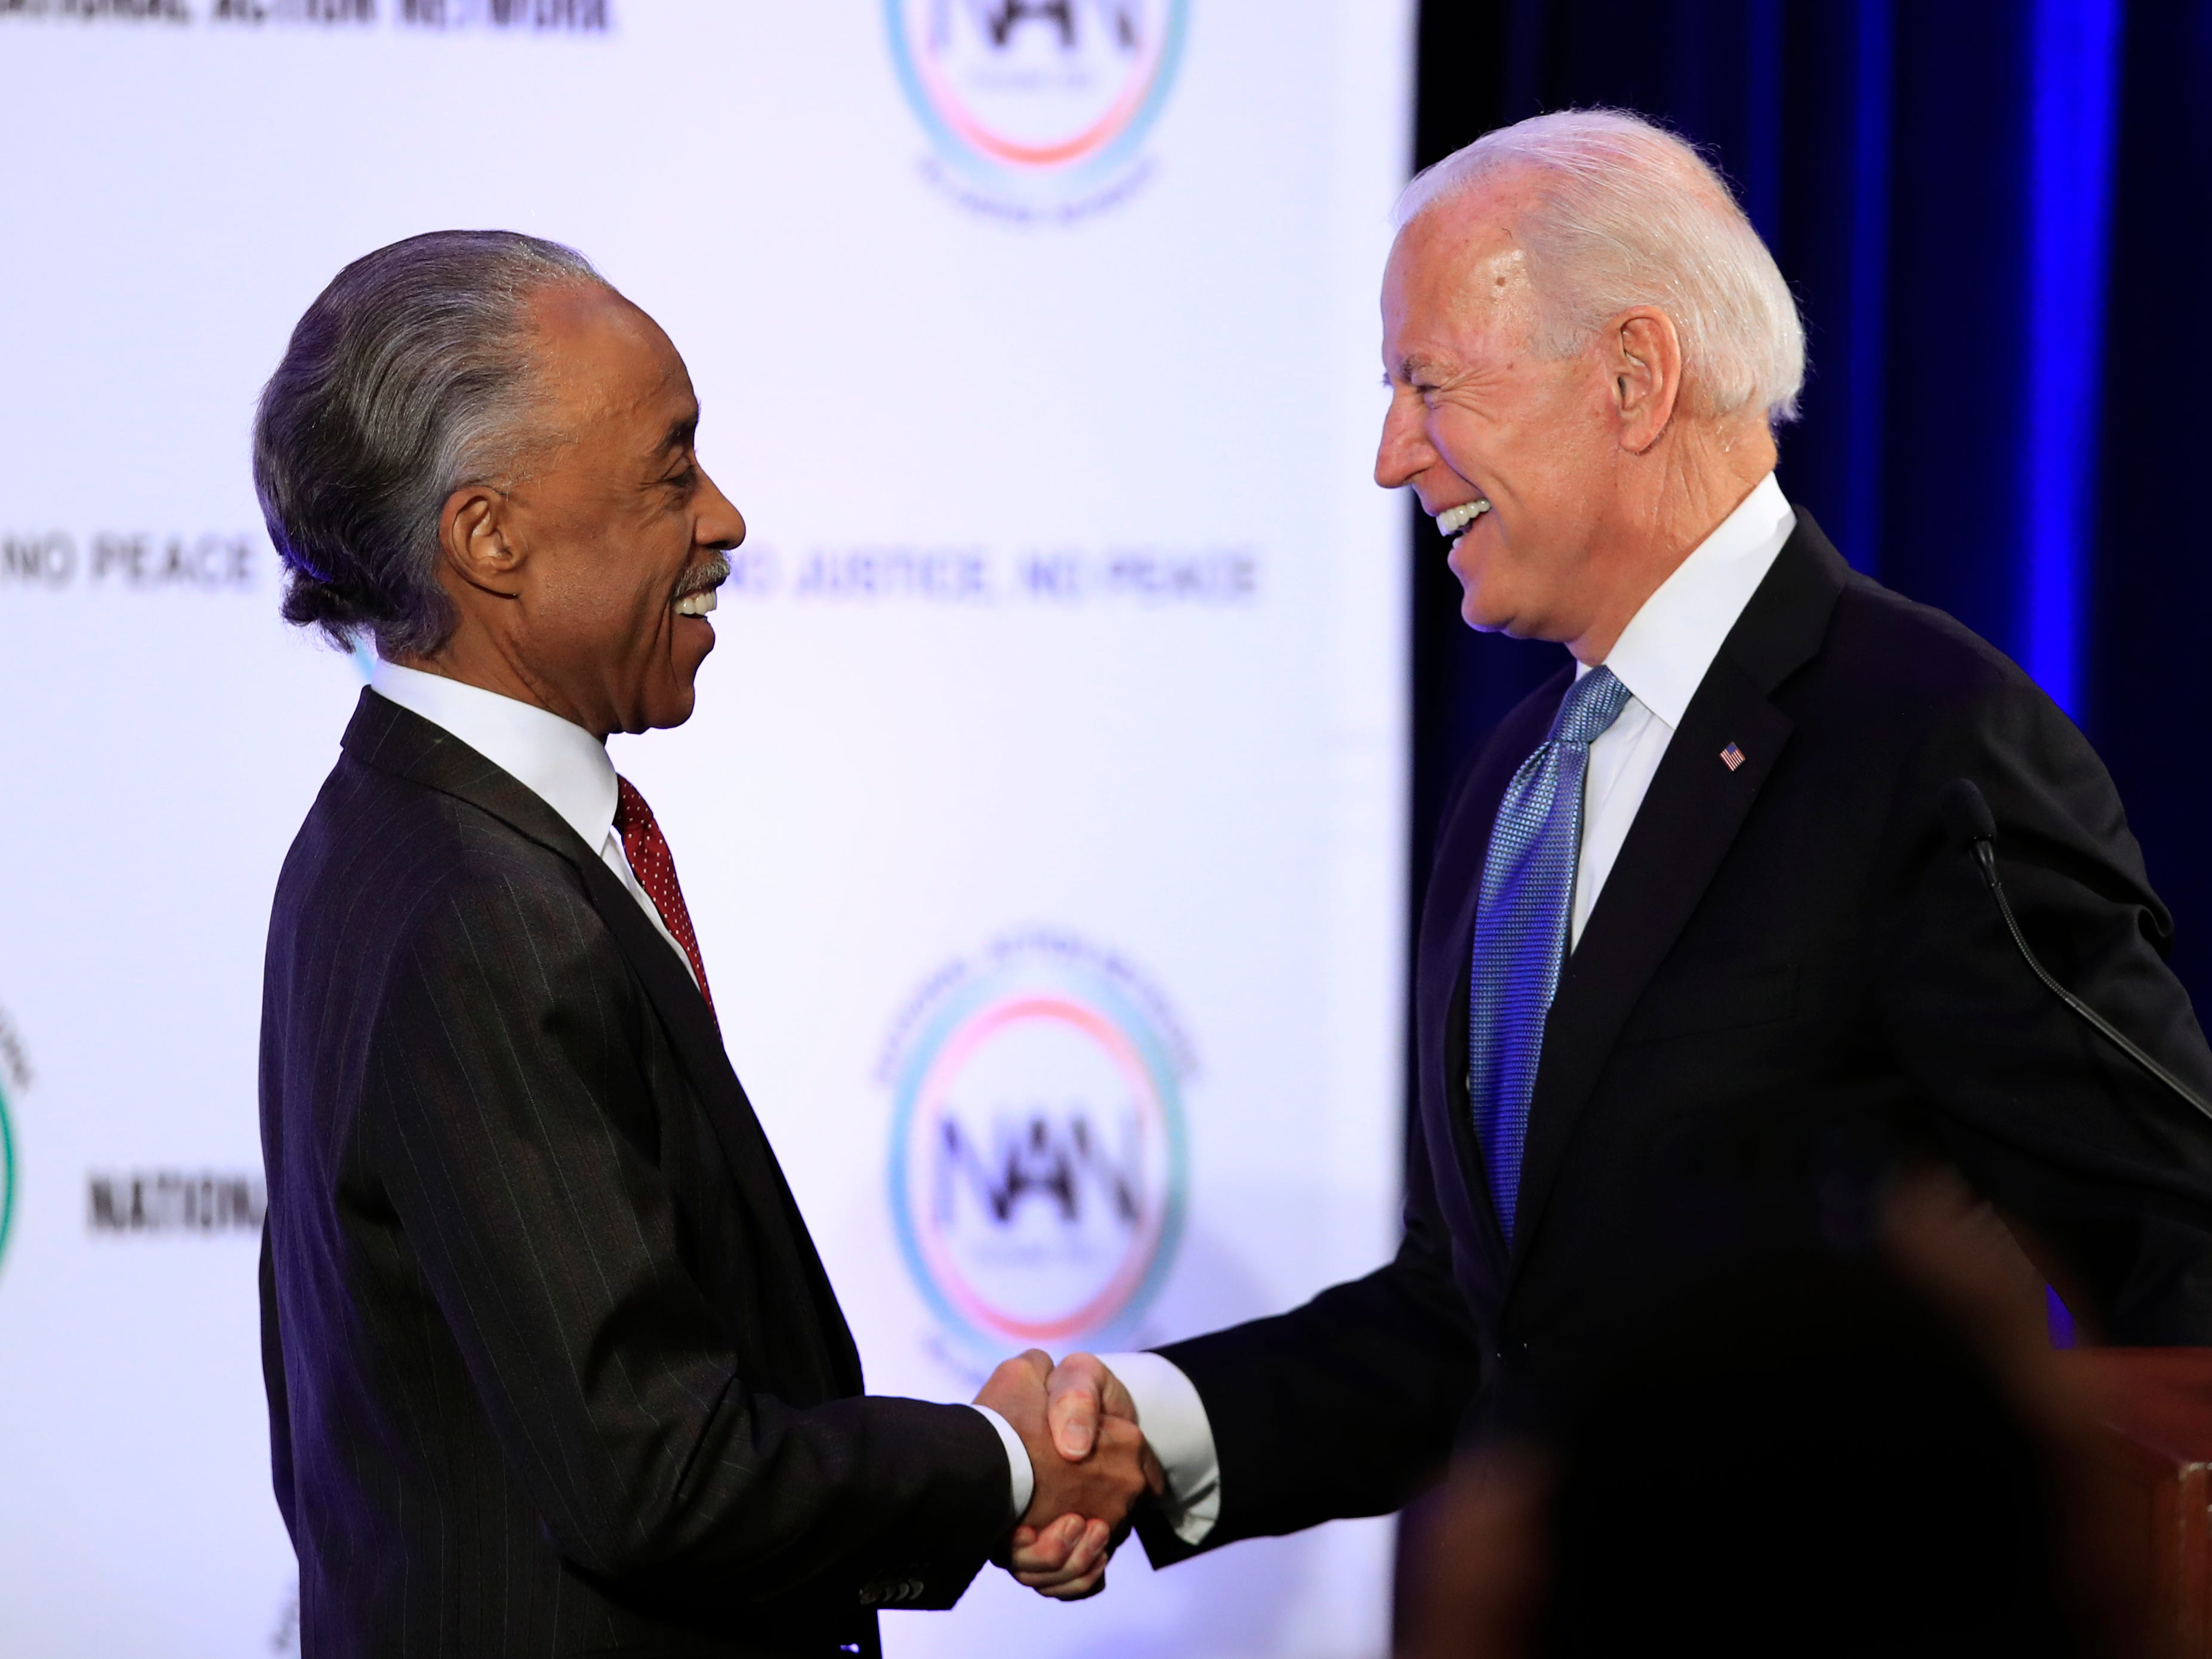 Former Vice President Joe Biden and Rev. Al Sharpton shake hands during a breakfast gathering commemorating the Martin Luther King Day in Washington.